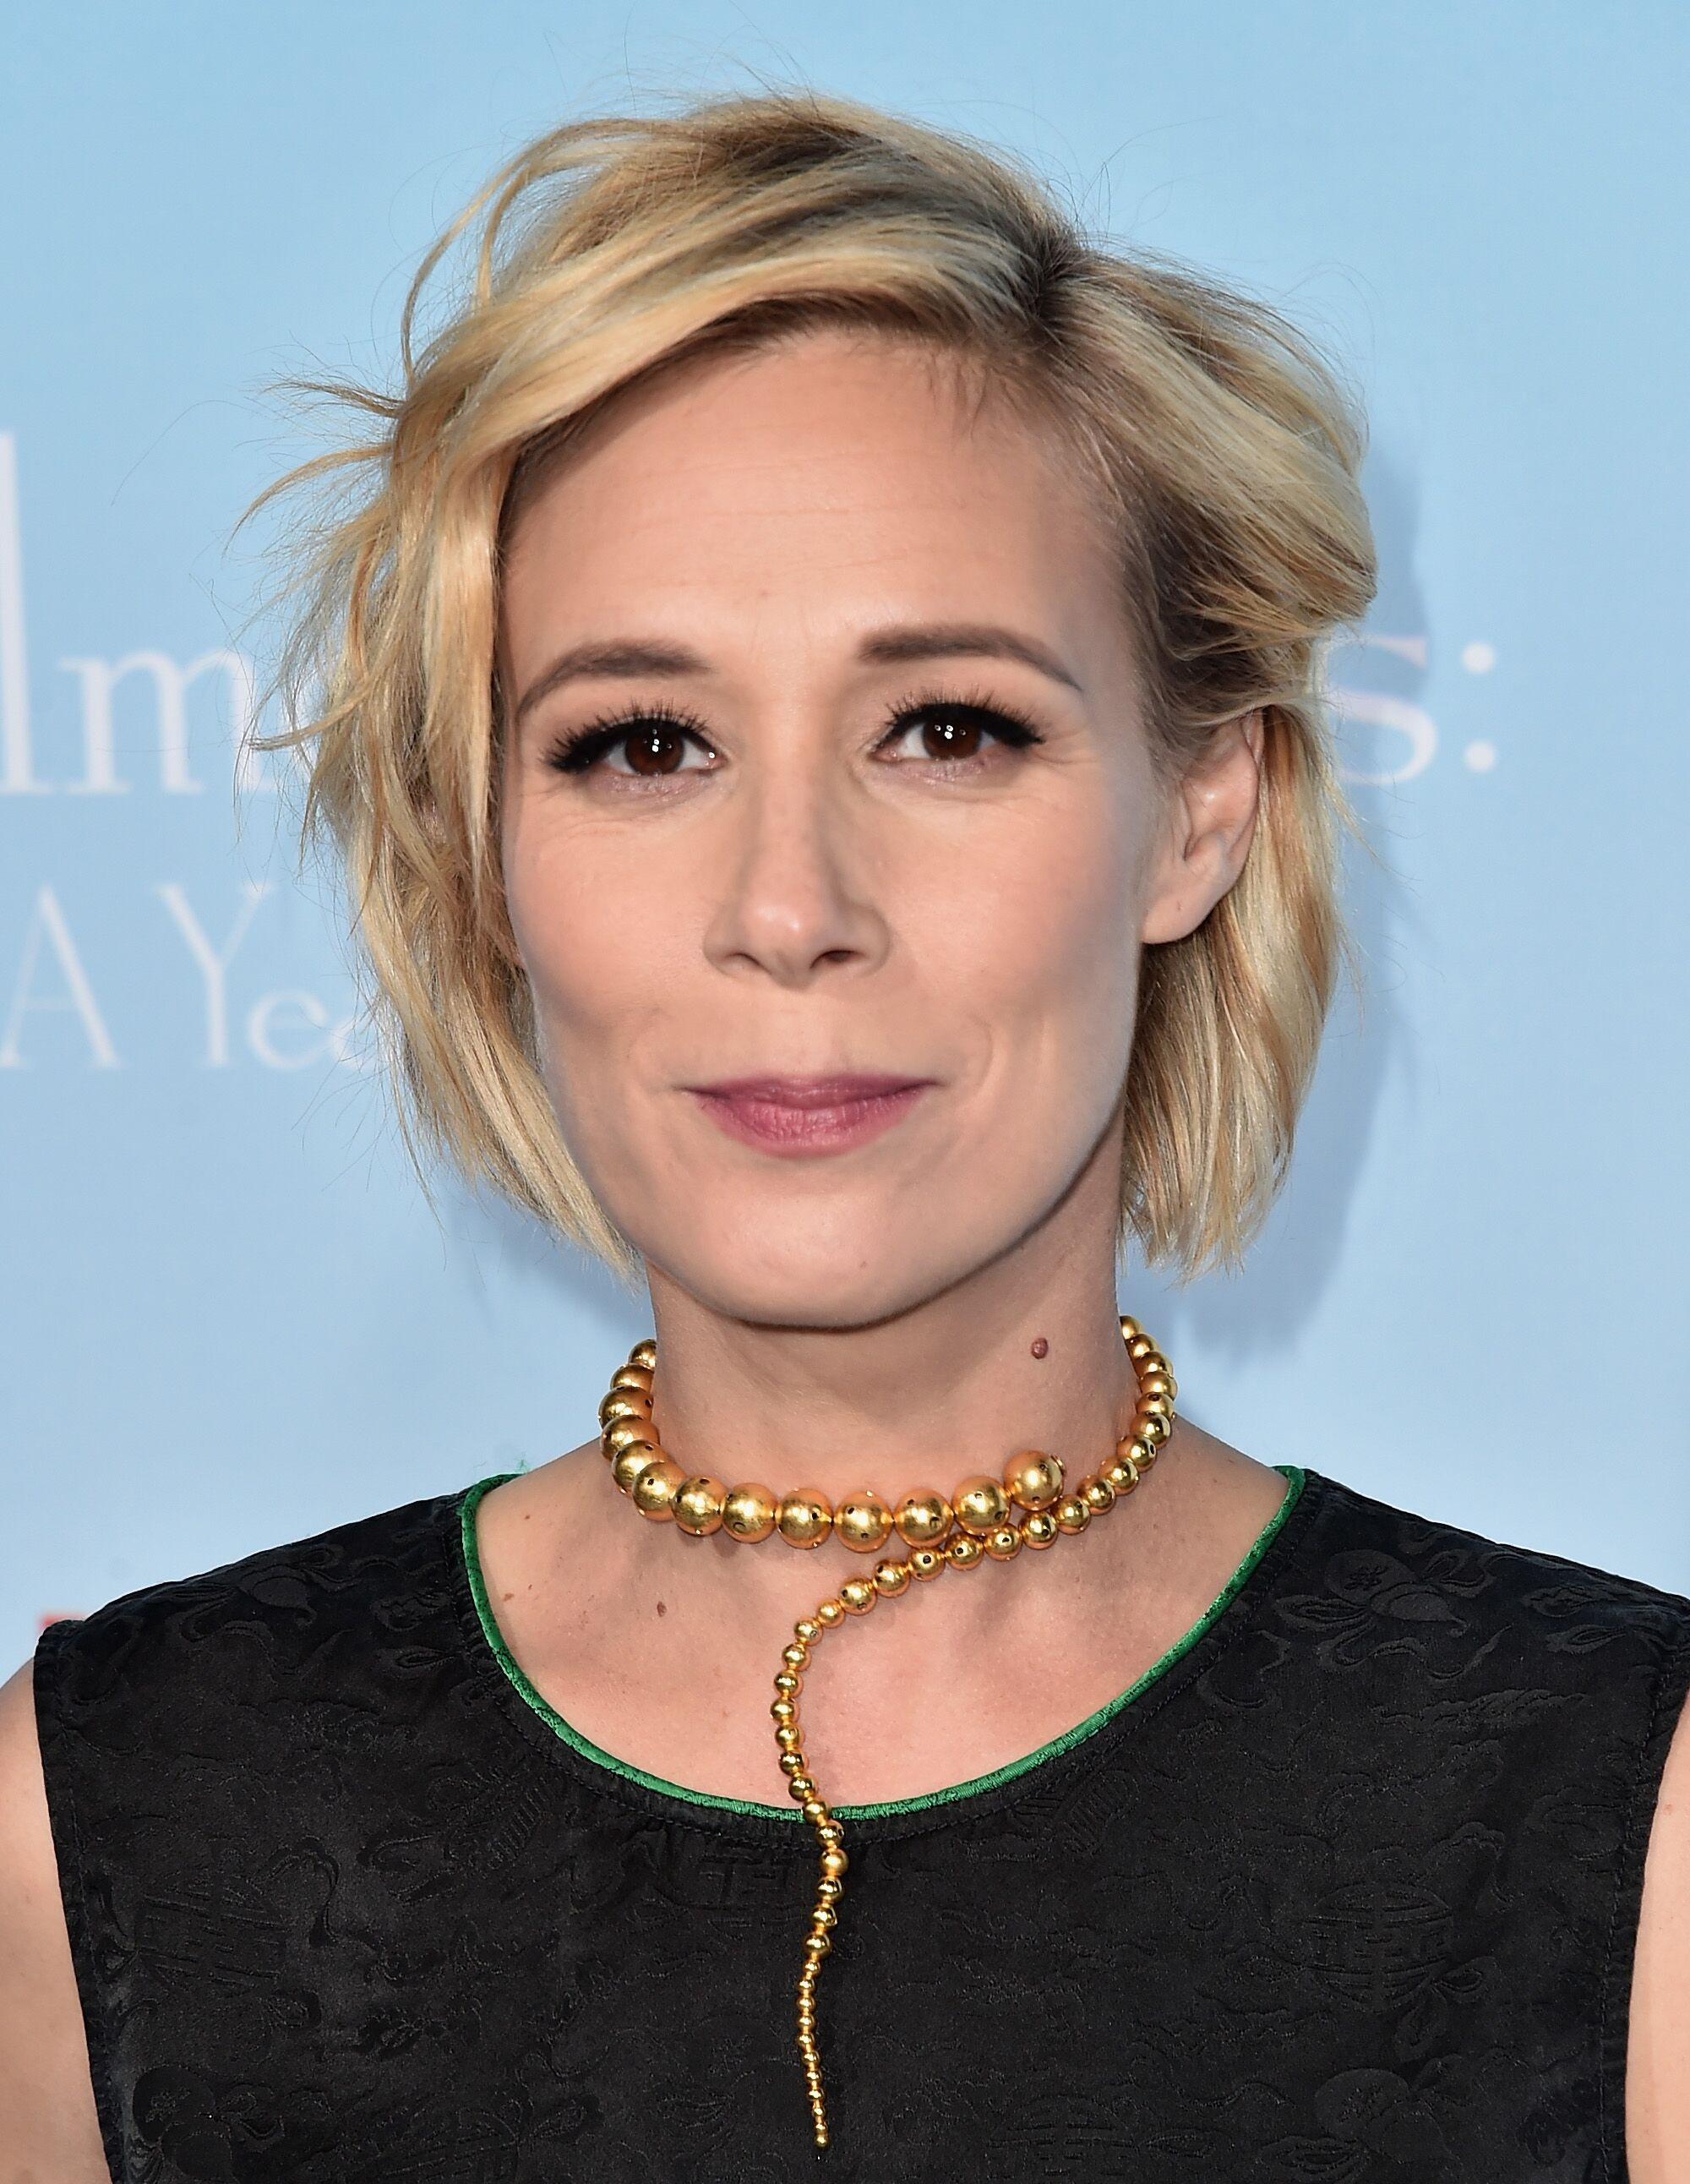 """Actress Liza Weil attends the premiere of Netflix's """"Gilmore Girls: A Year In The Life"""" at the Regency Bruin Theatre on November 18, 2016 in Los Angeles, California   Photo: Getty Images"""